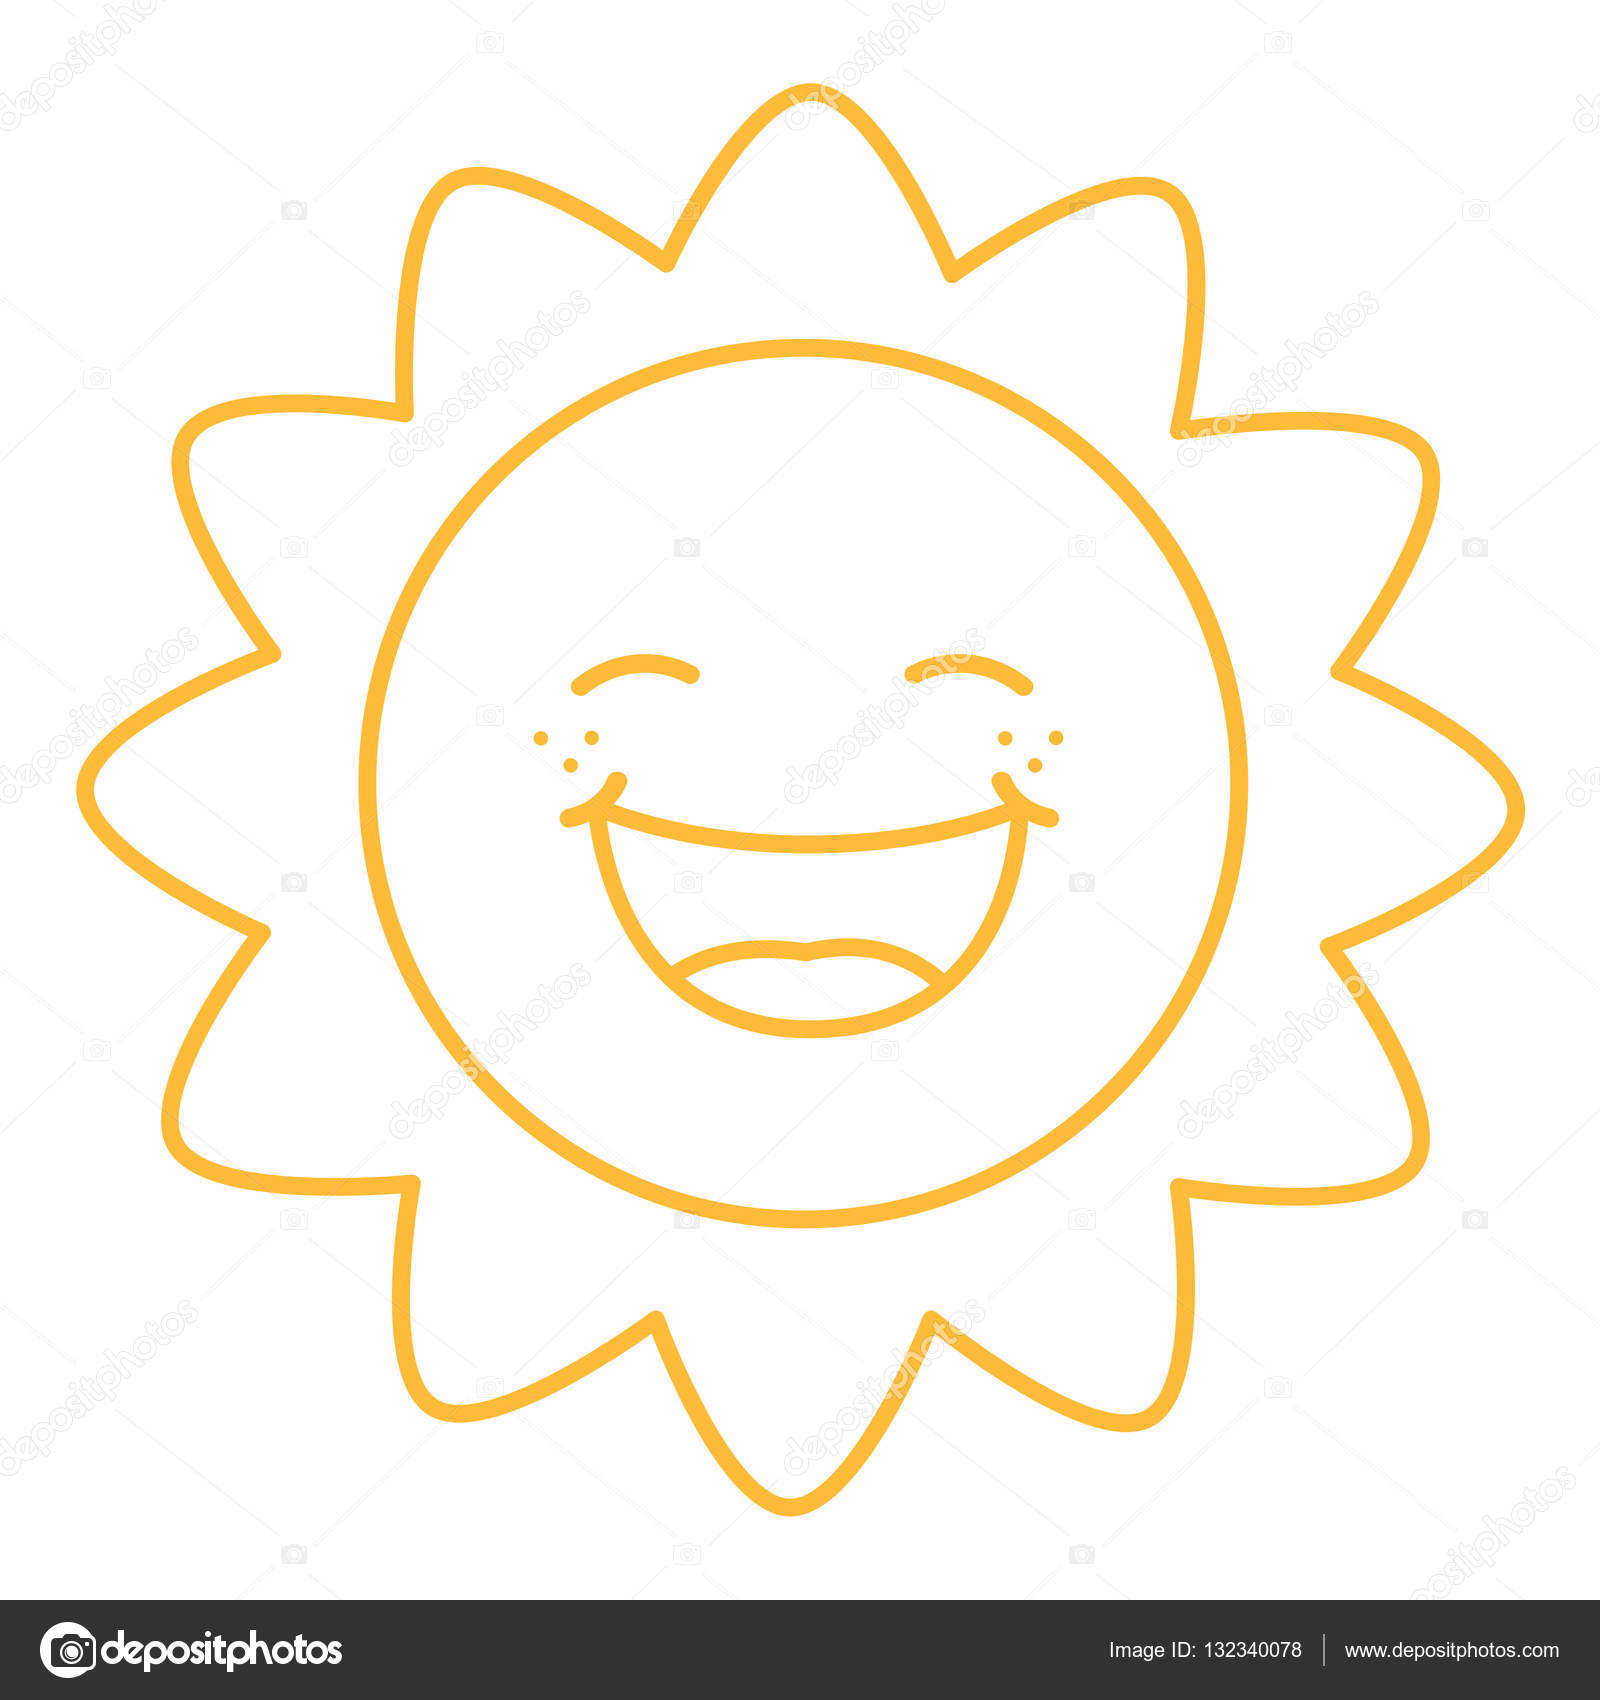 Coloring Page Illustration Of Cartoon Sun Stock Vector